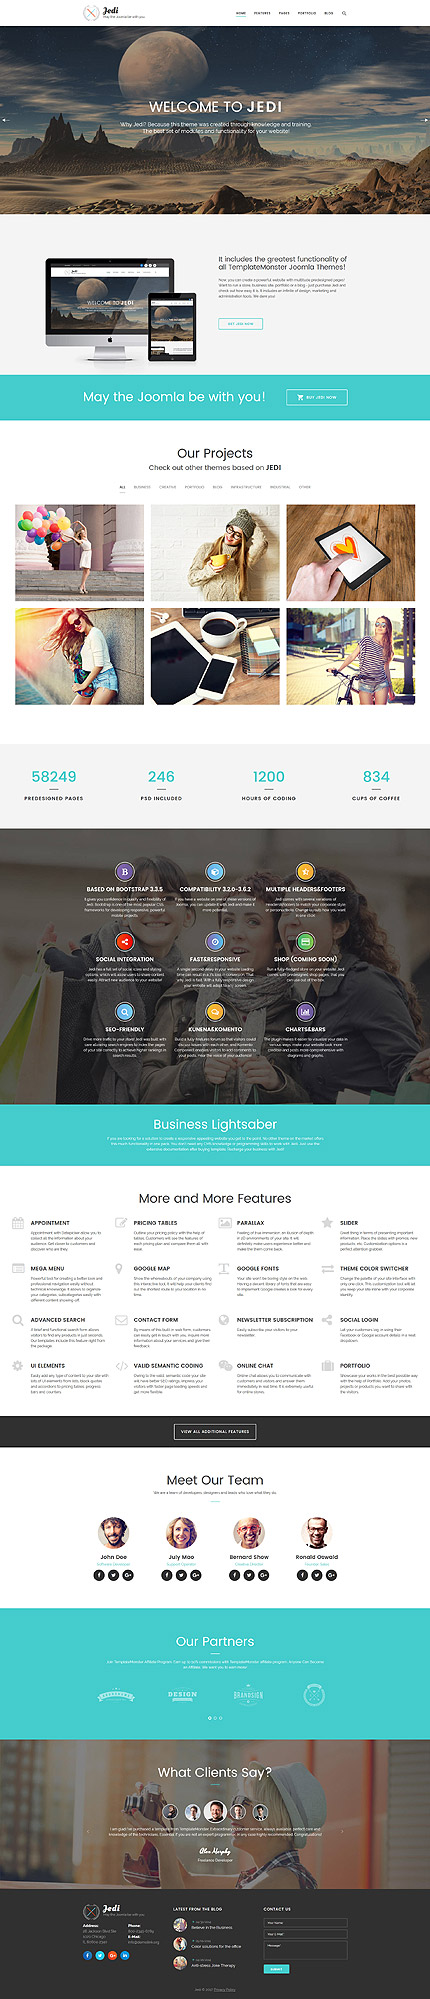 Business Most Popular website inspirations at your coffee break? Browse for more Joomla #templates! // Regular price: $87 // Sources available: .PSD, .PHP #Business #Most Popular #Joomla